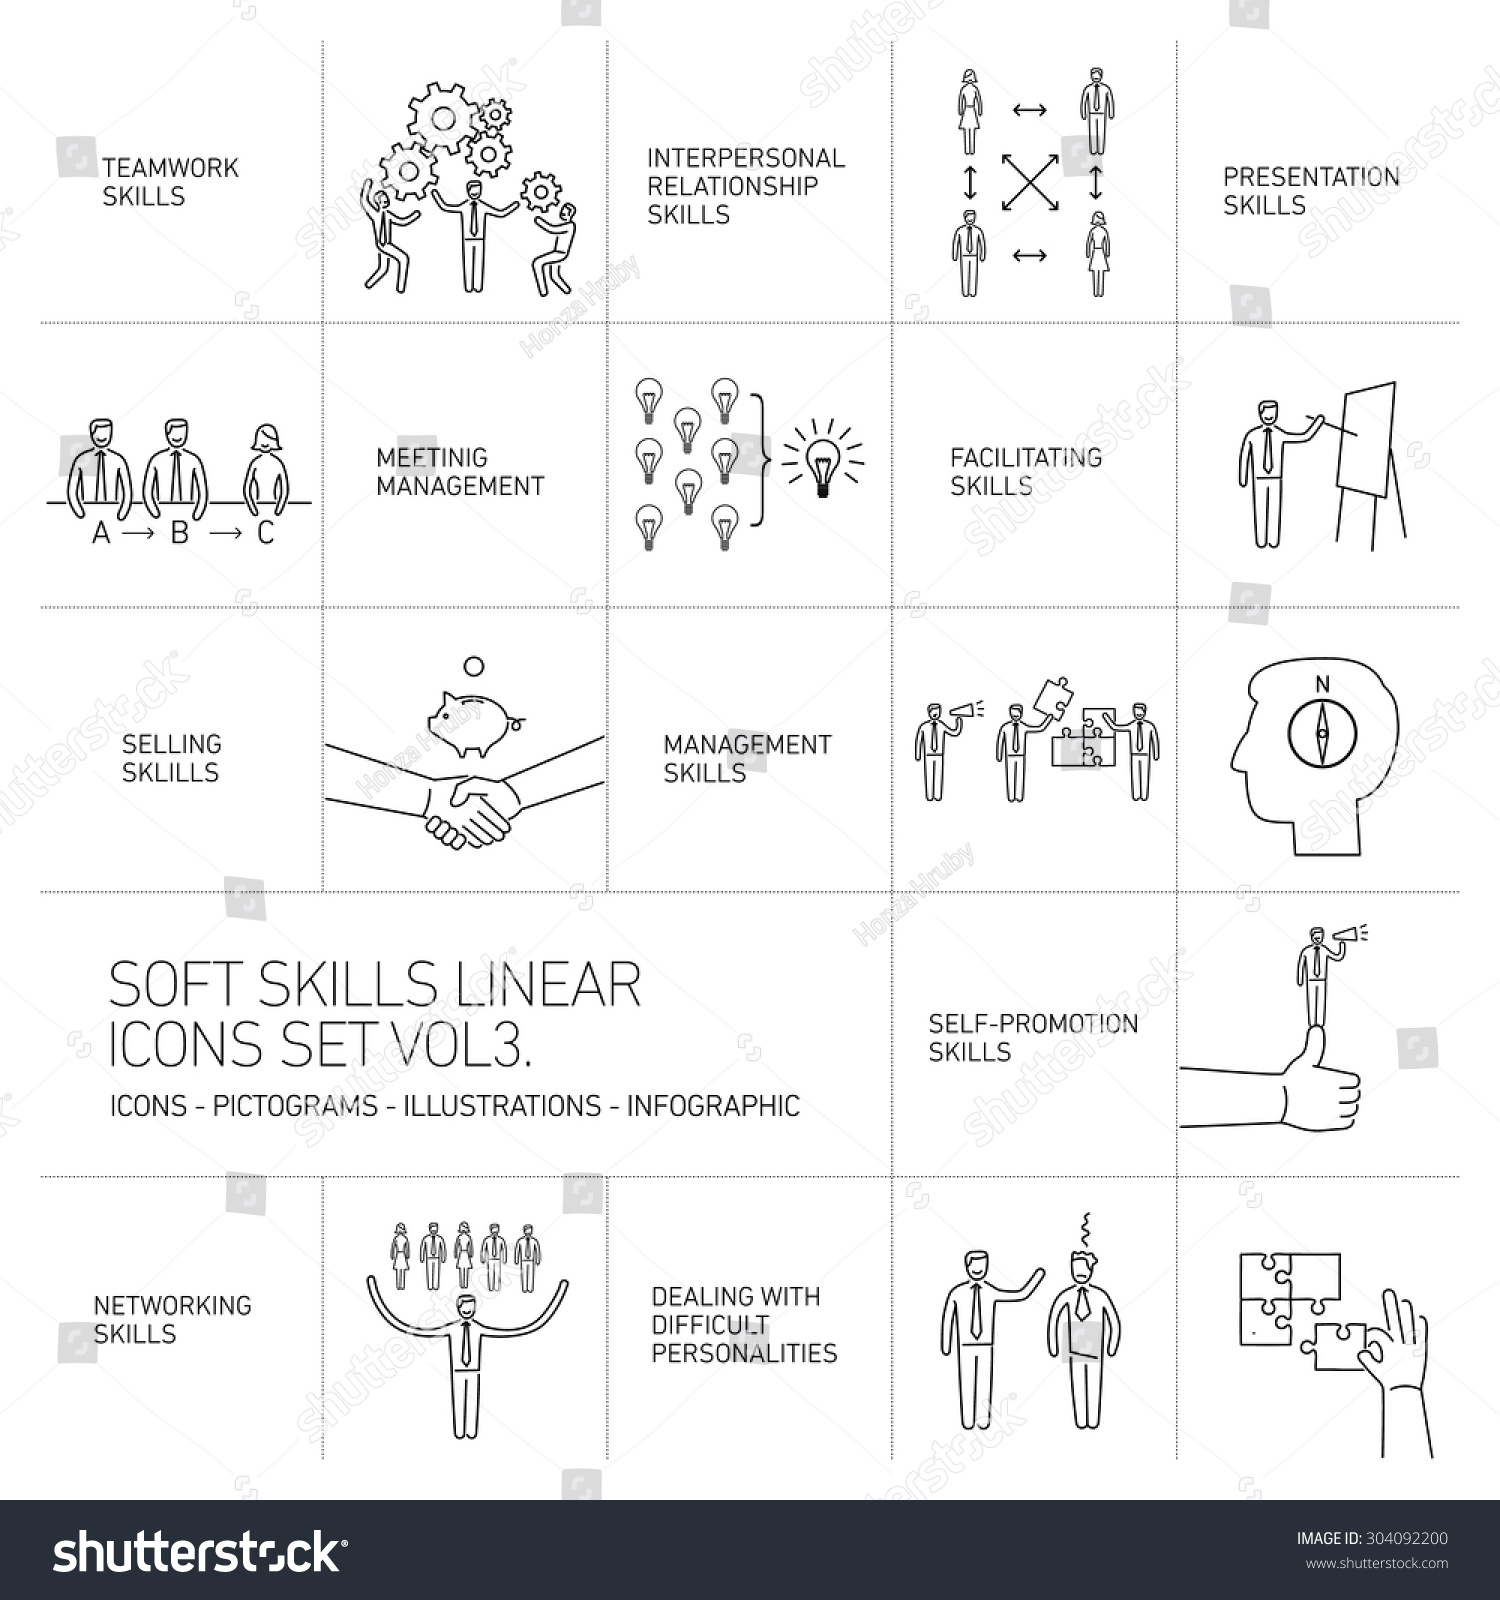 soft skills linear vector icons pictograms stock vector 304092200 soft skills linear vector icons and pictograms set of human skills in business and teamwork black